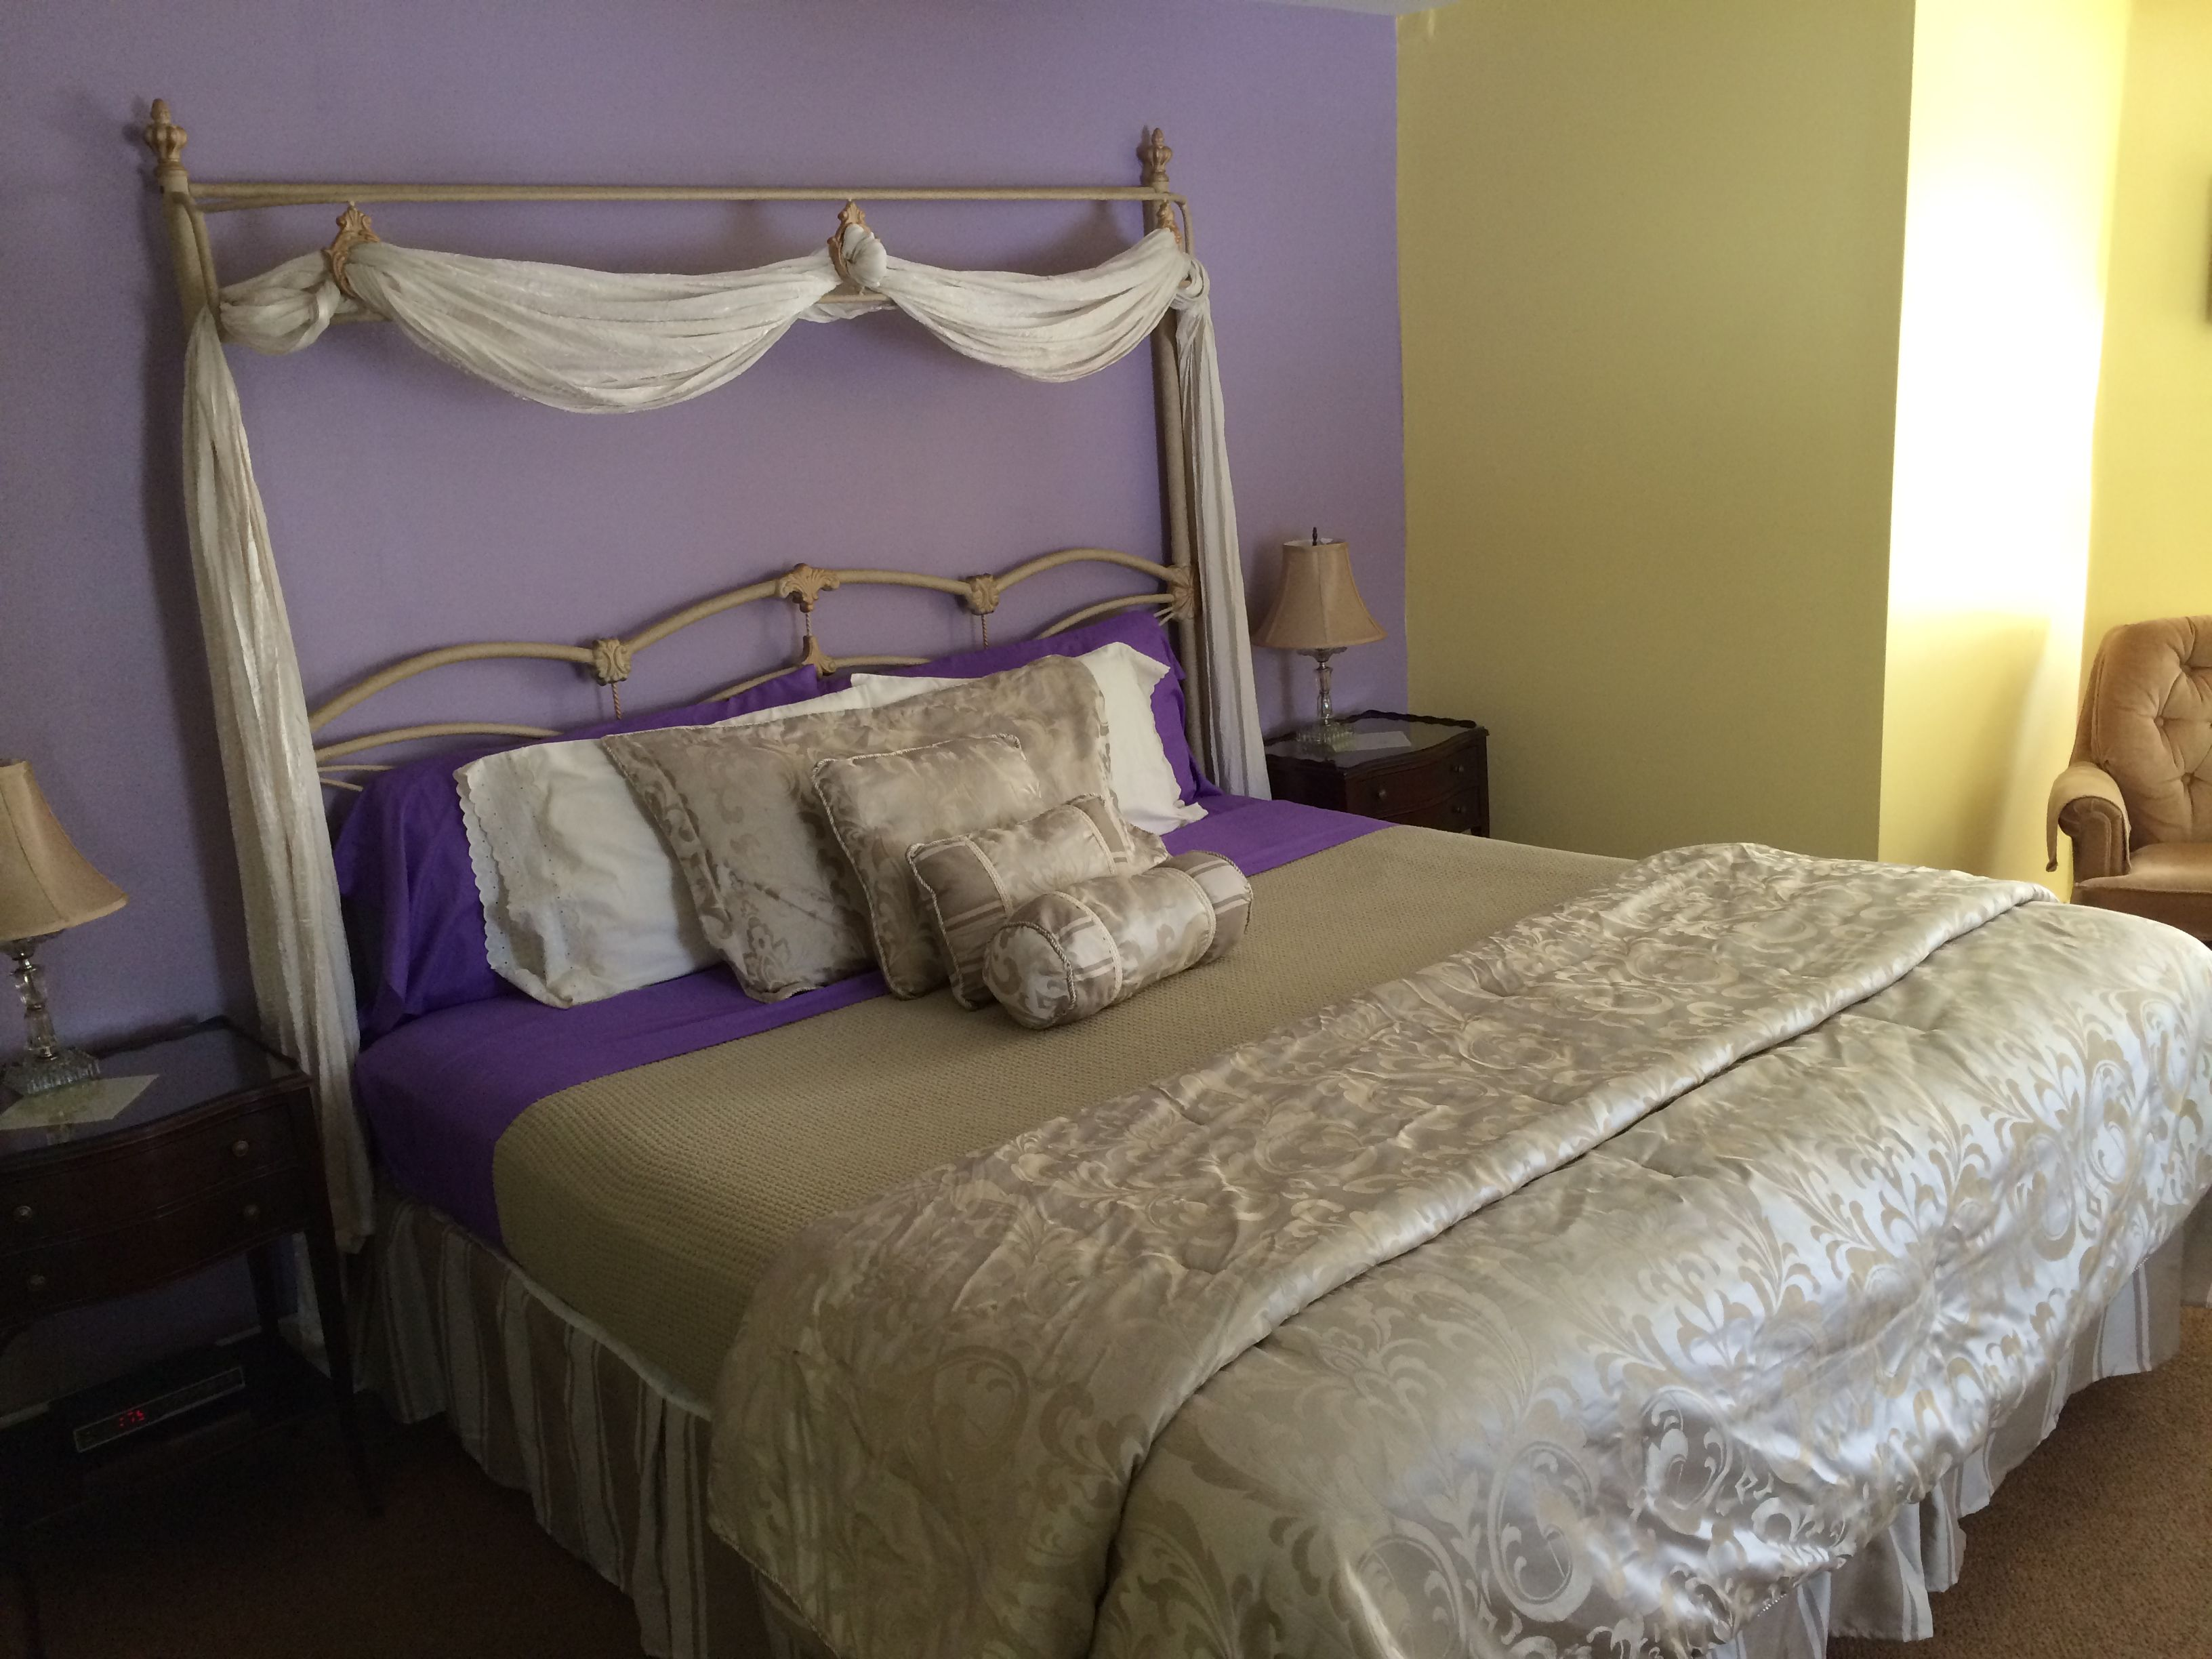 The Lavender Fields room at the Fox and Hound Inn of New